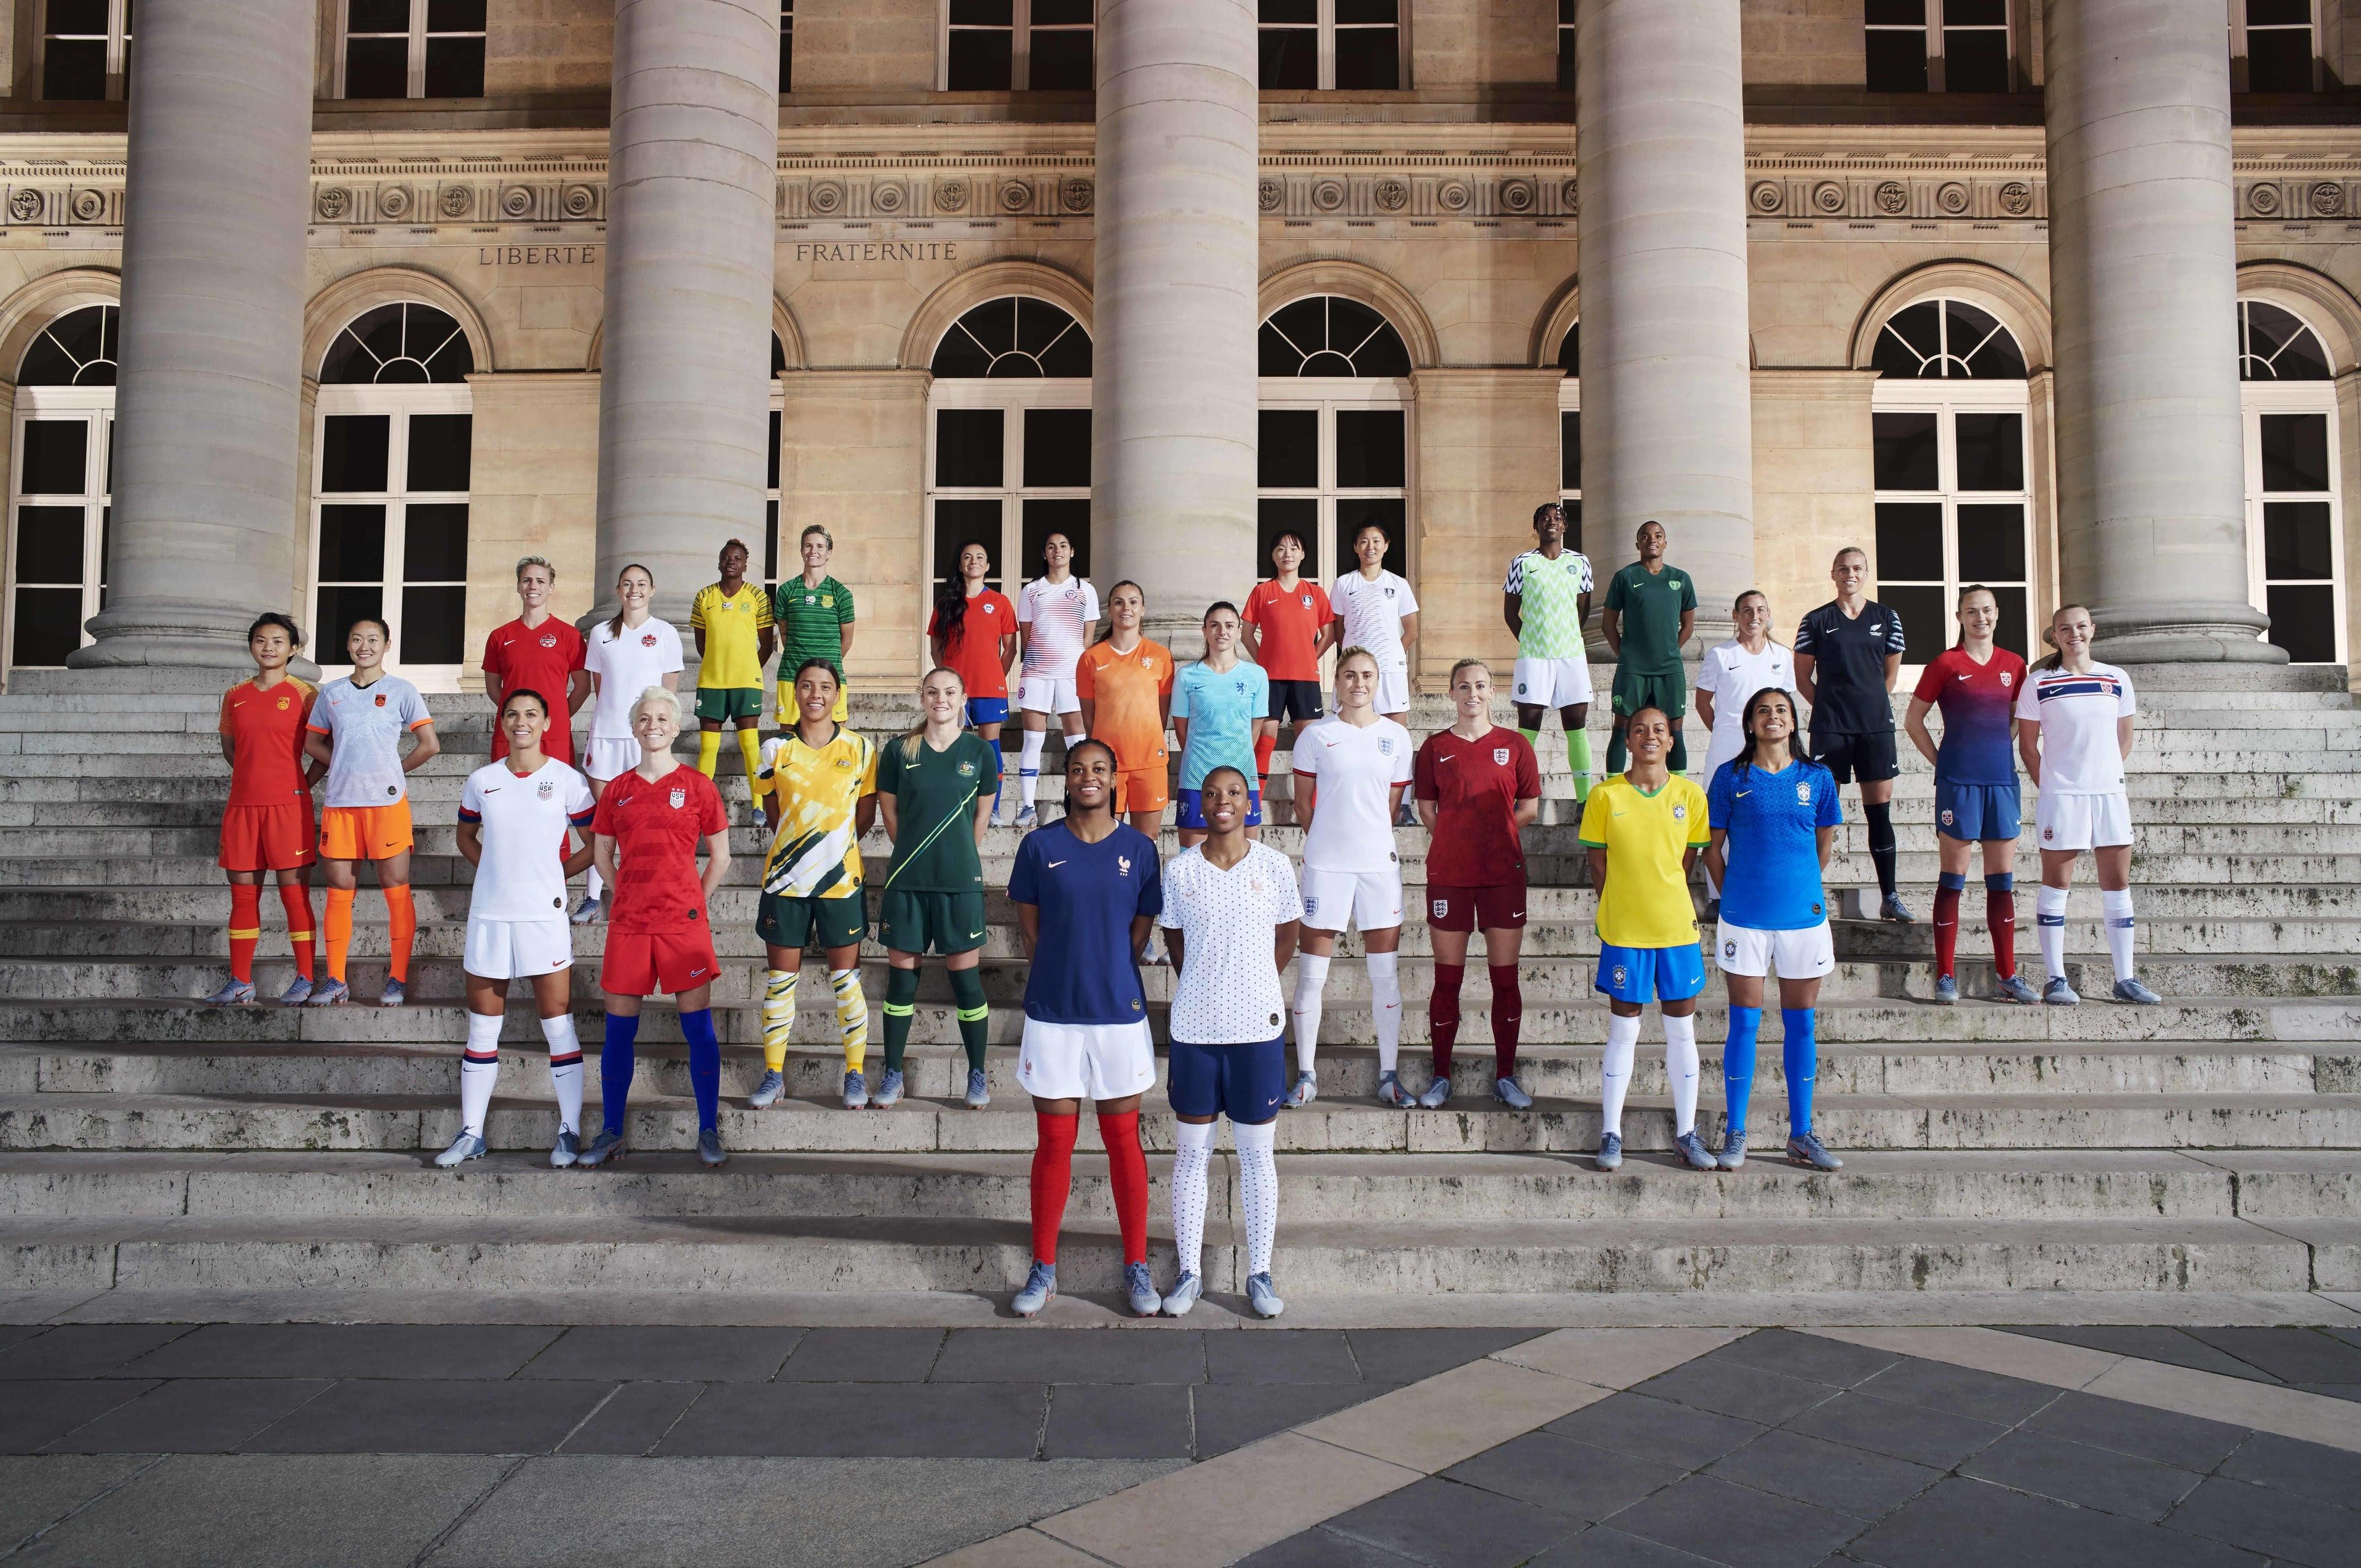 cd9700f23b52d In celebration of this summer's FIFA Women's World Cup in France, Nike  unveiled 14 National Team Collections.